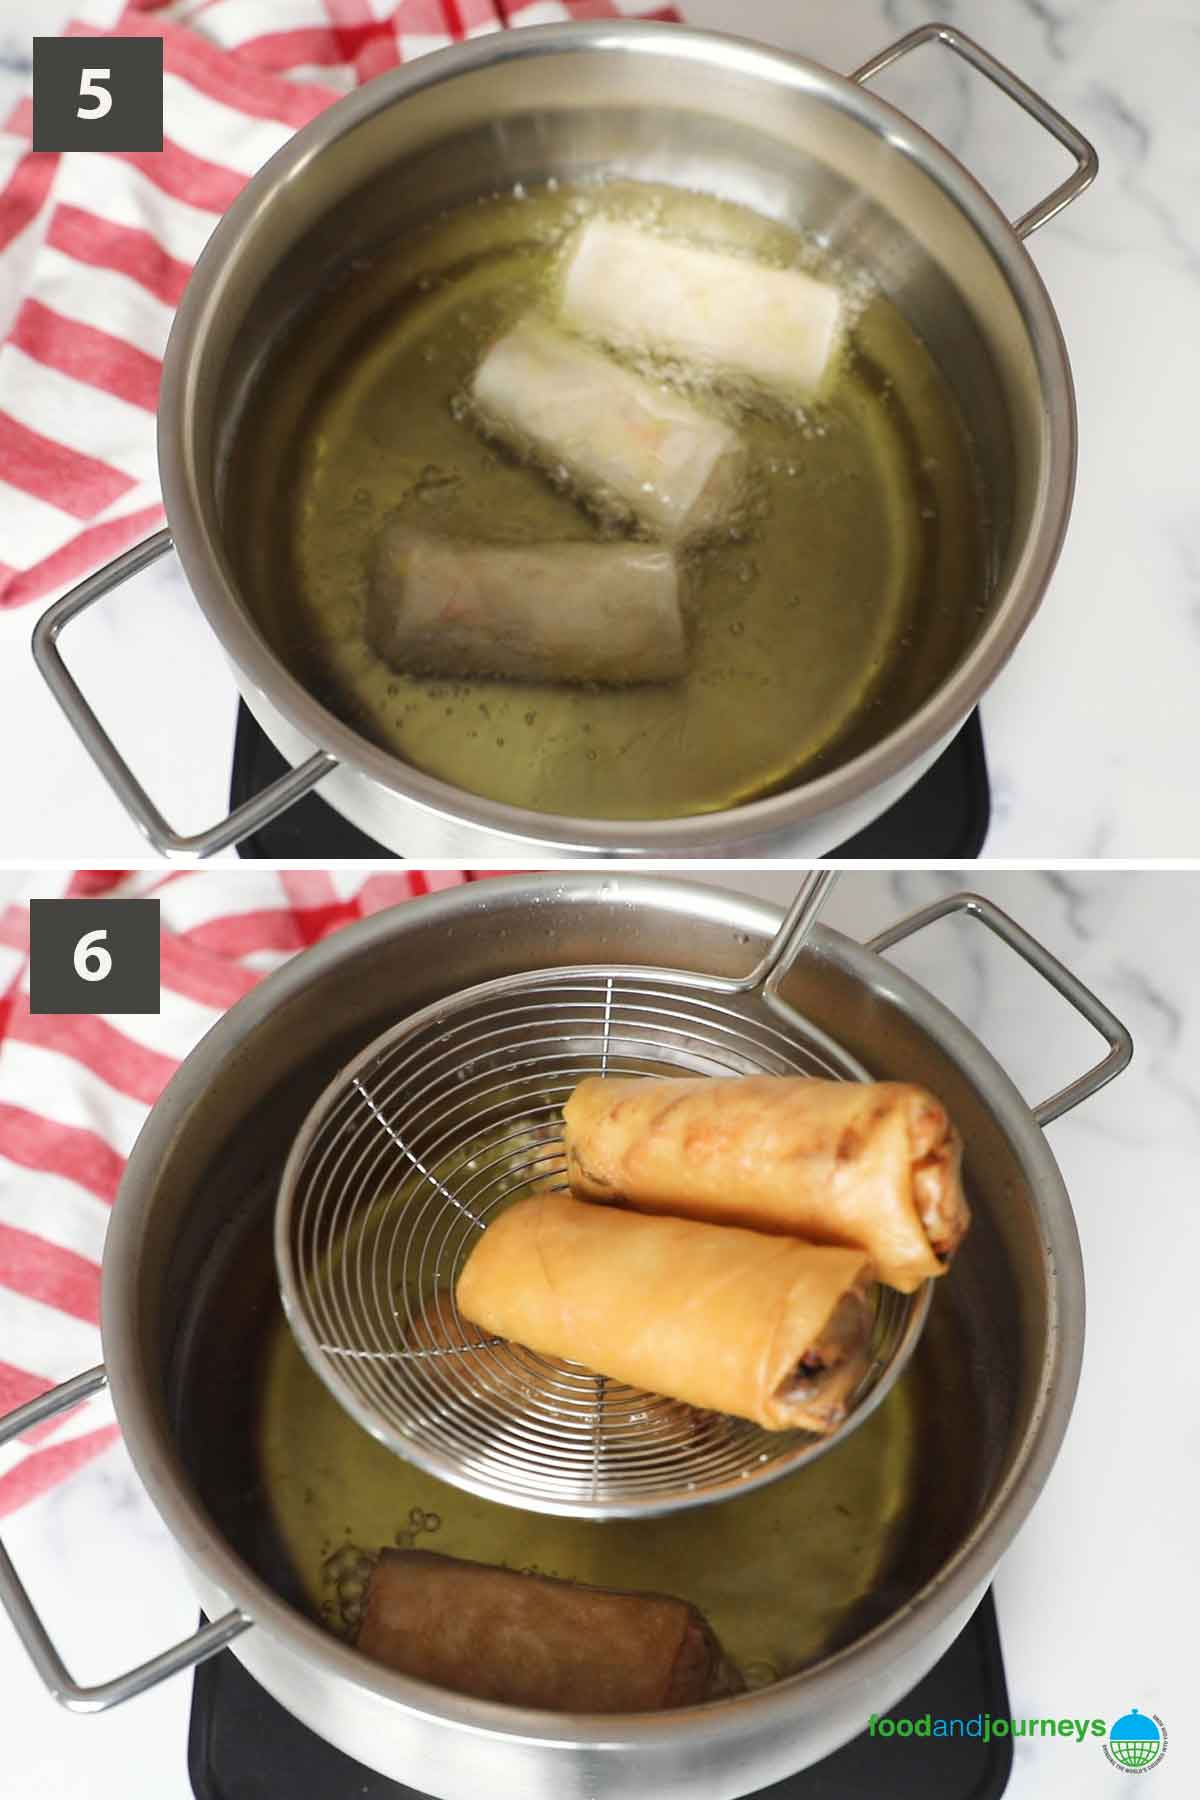 Second part of a collage of images showing the step by step process on how to make lumpia.